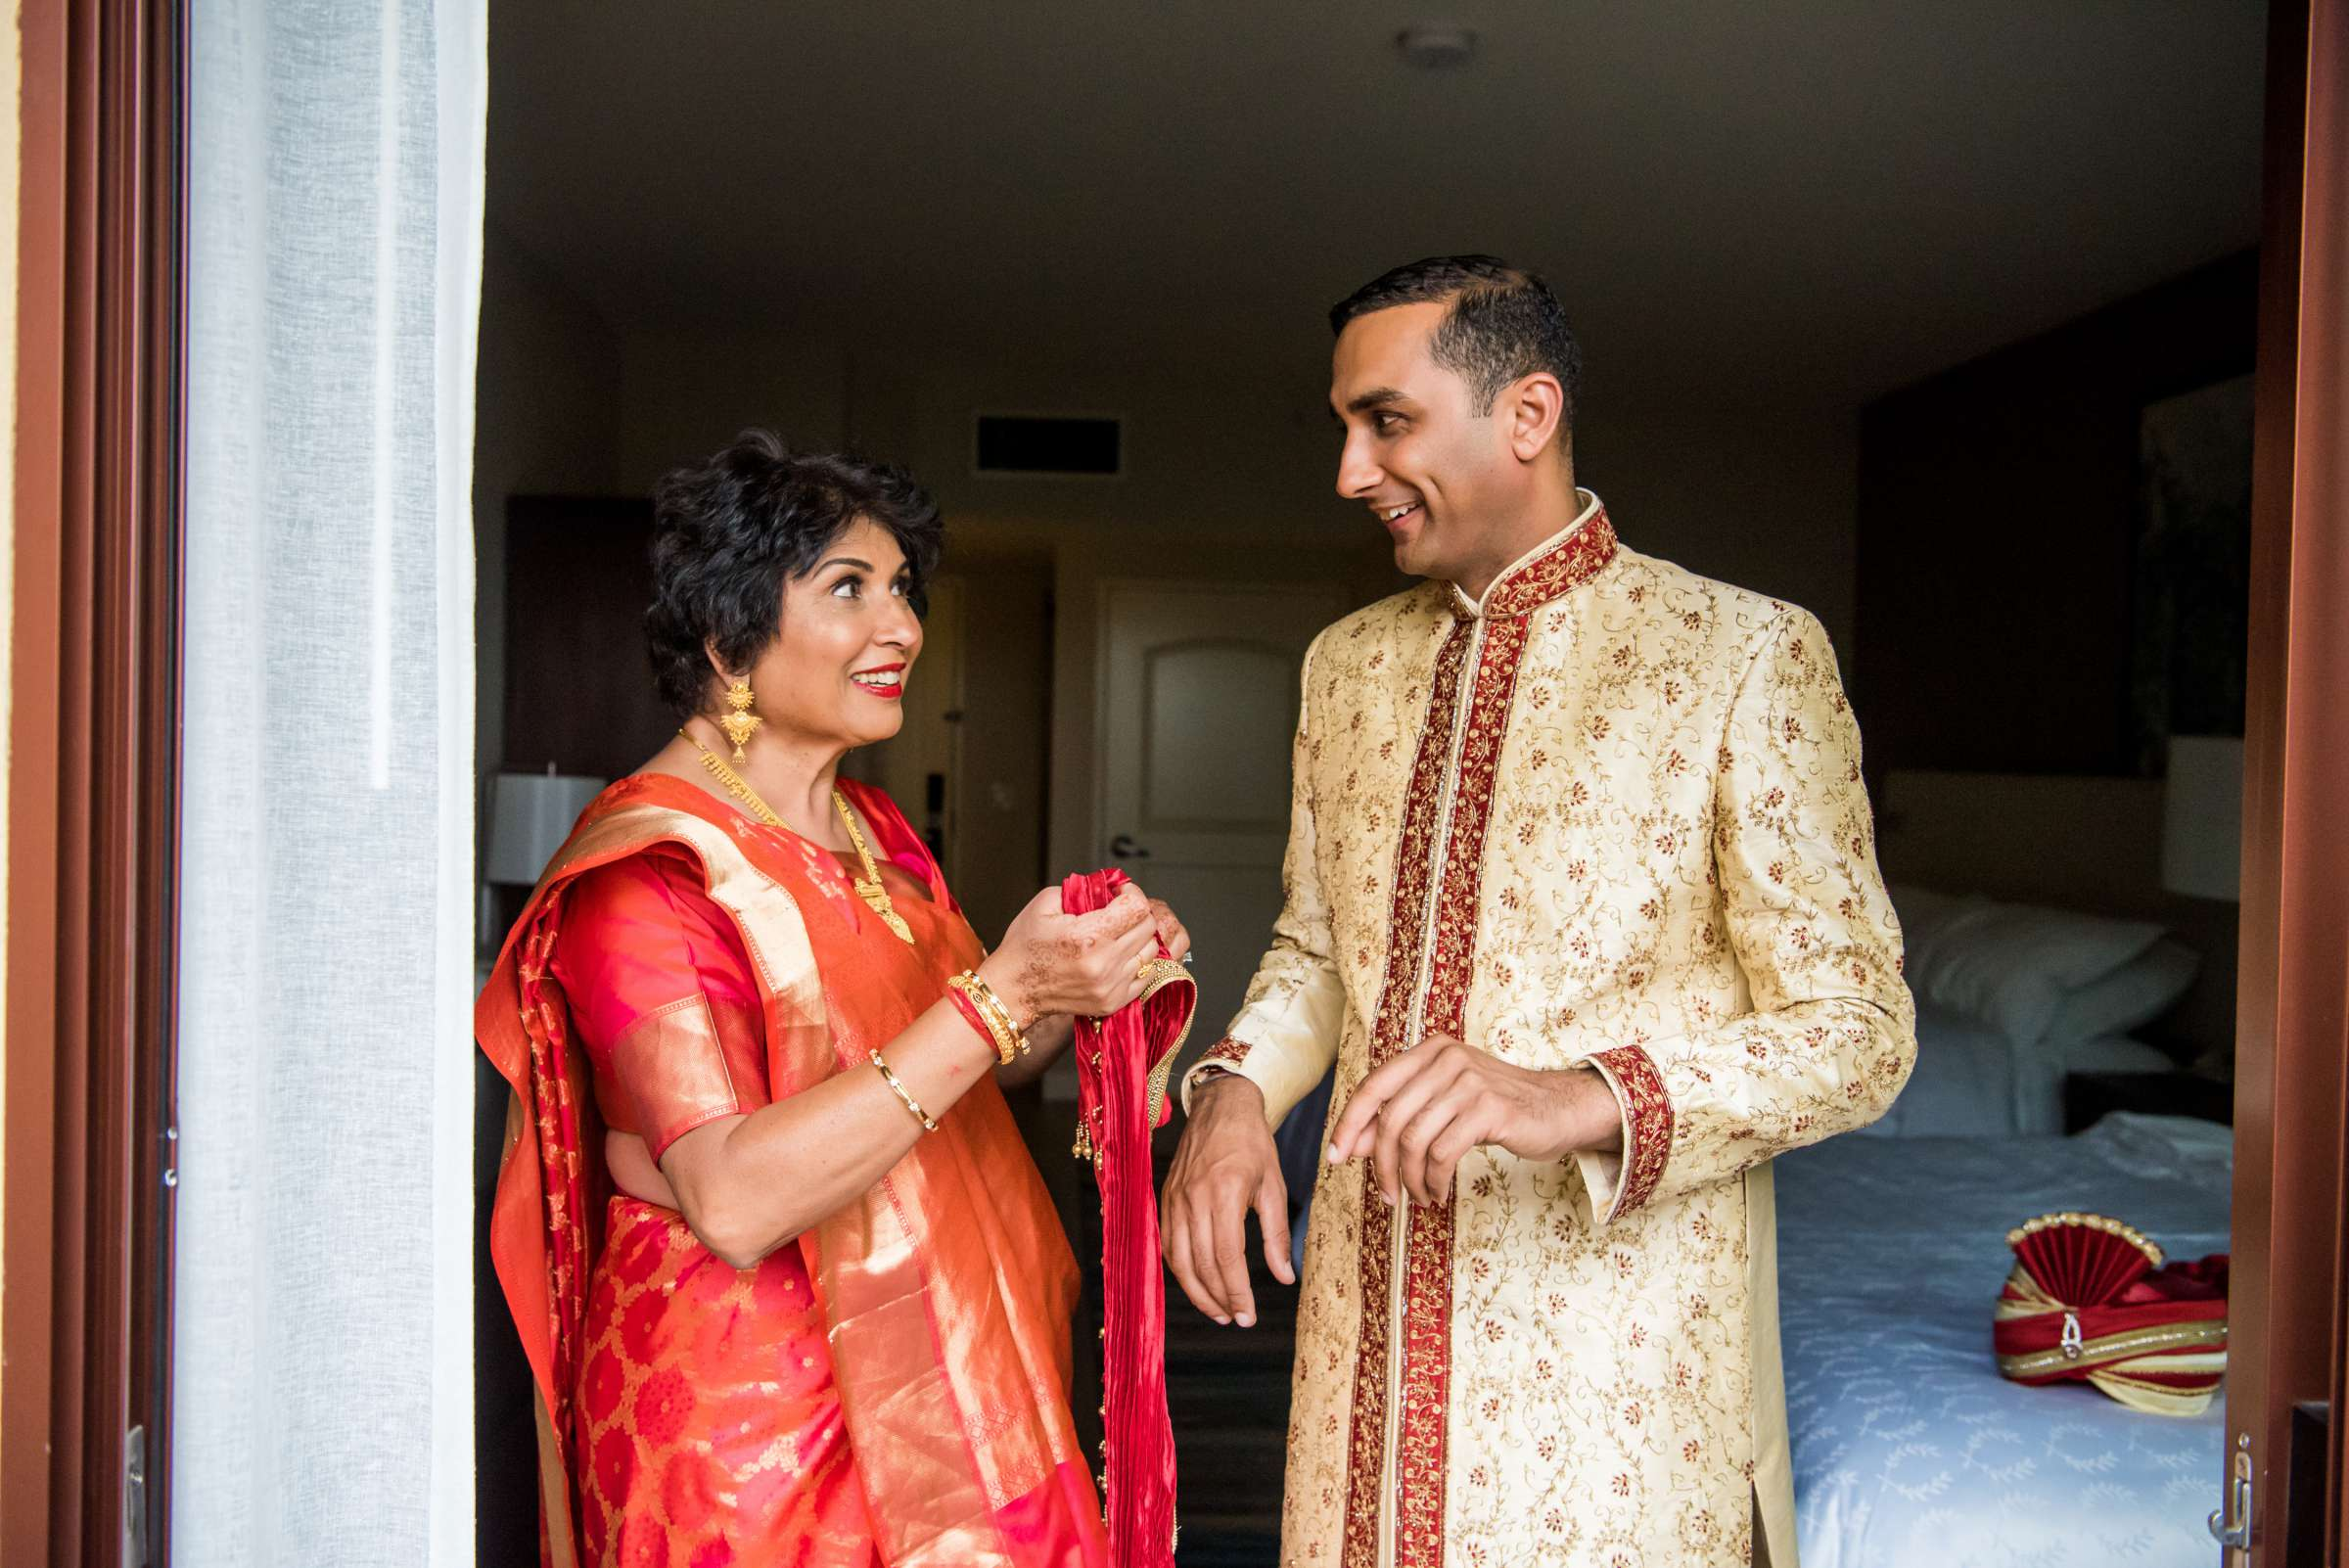 The Westin Carlsbad Resort and Spa Wedding coordinated by Shilpa Patel Events, Ami and Amit Wedding Photo #136 by True Photography